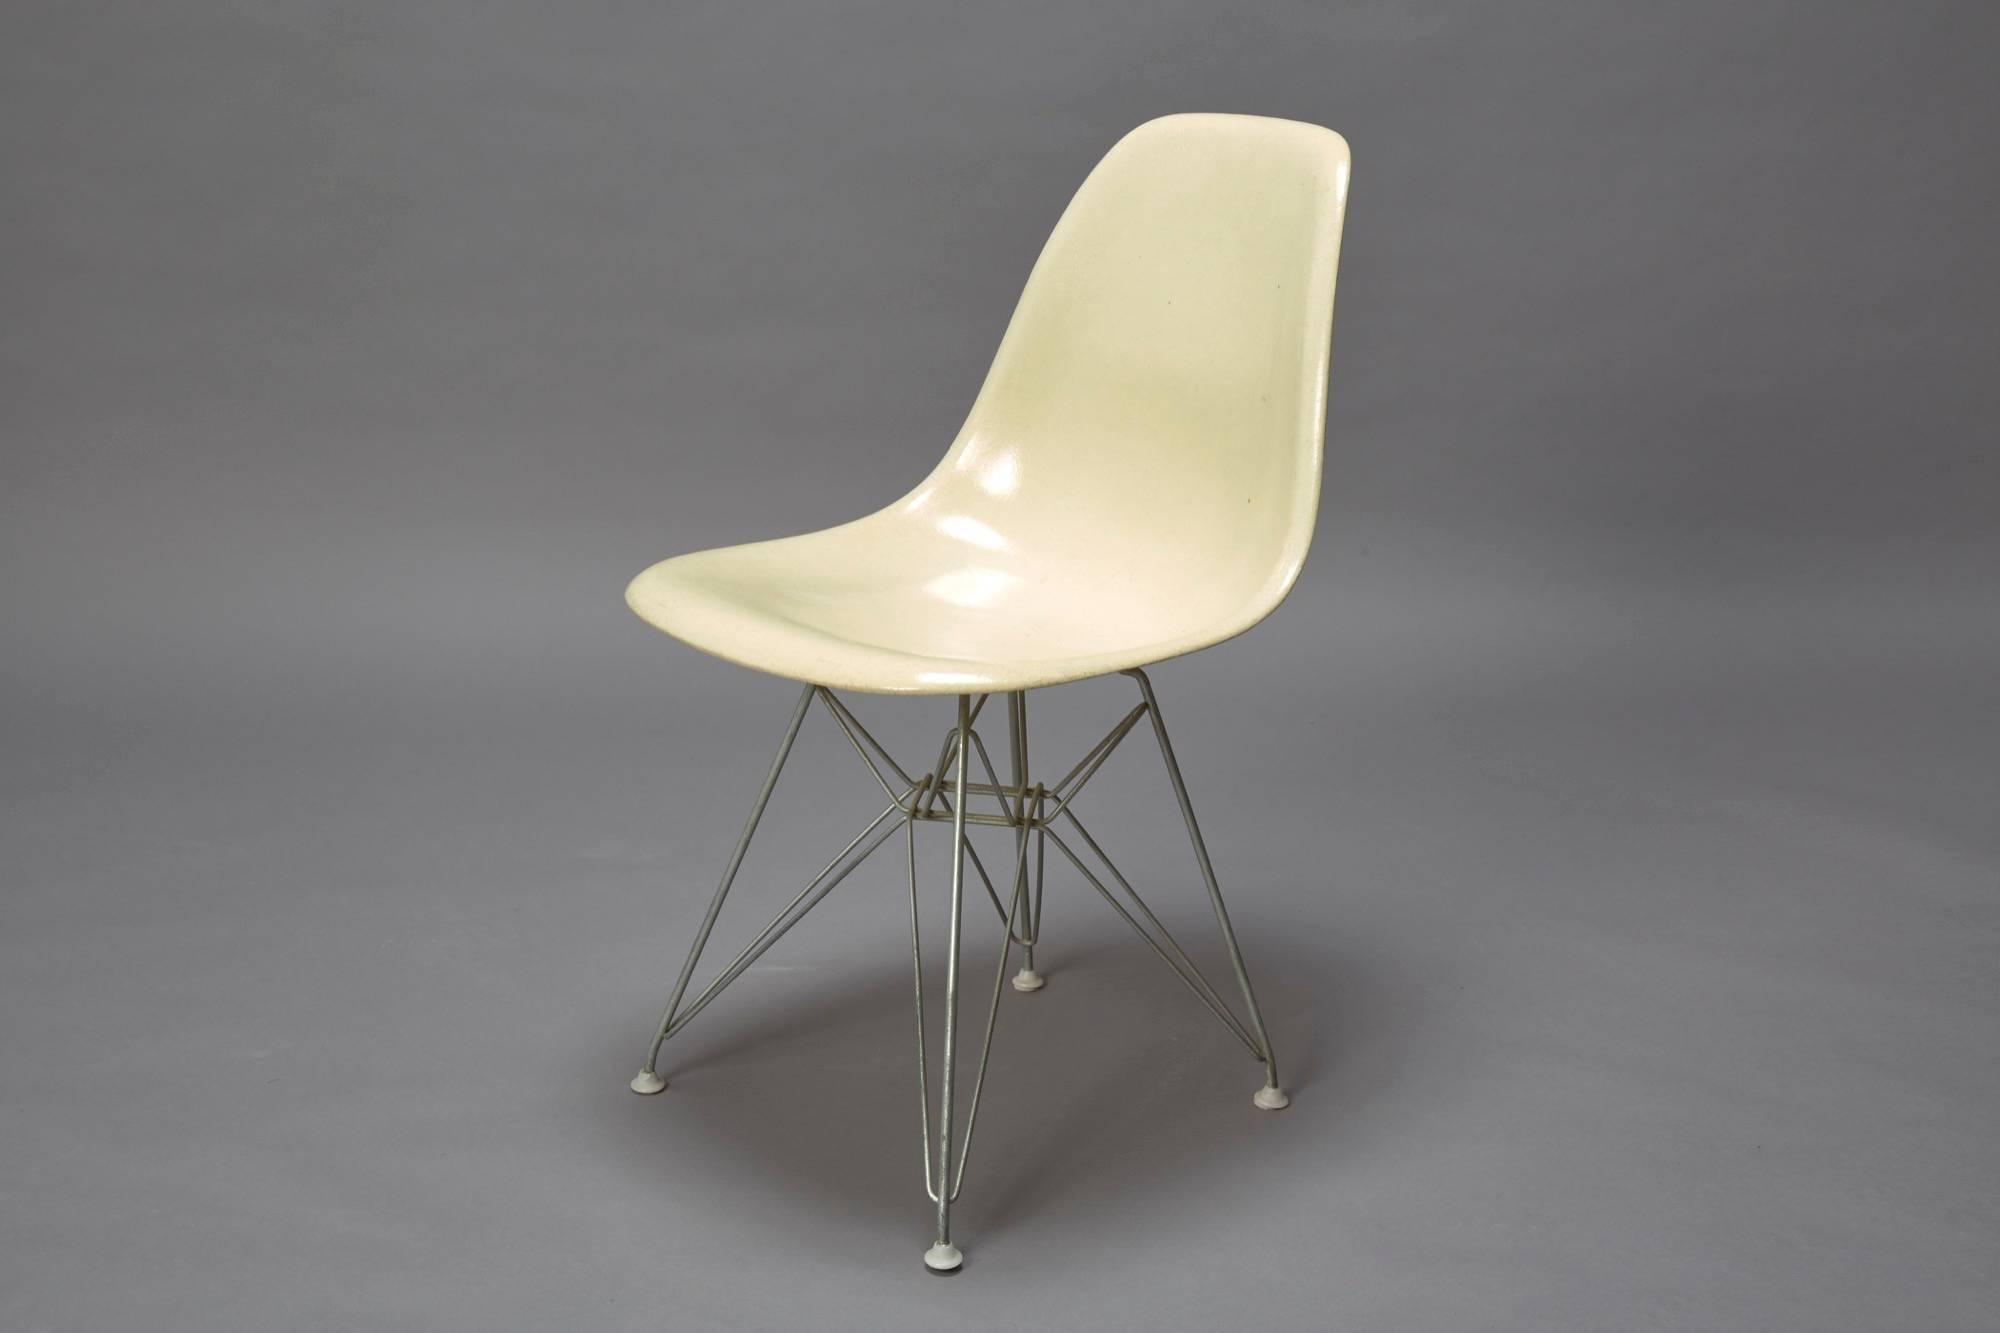 fiberglass shell chair kitchen table and chairs with wheels superb charles eames for herman miller mid century modern original eiffel base